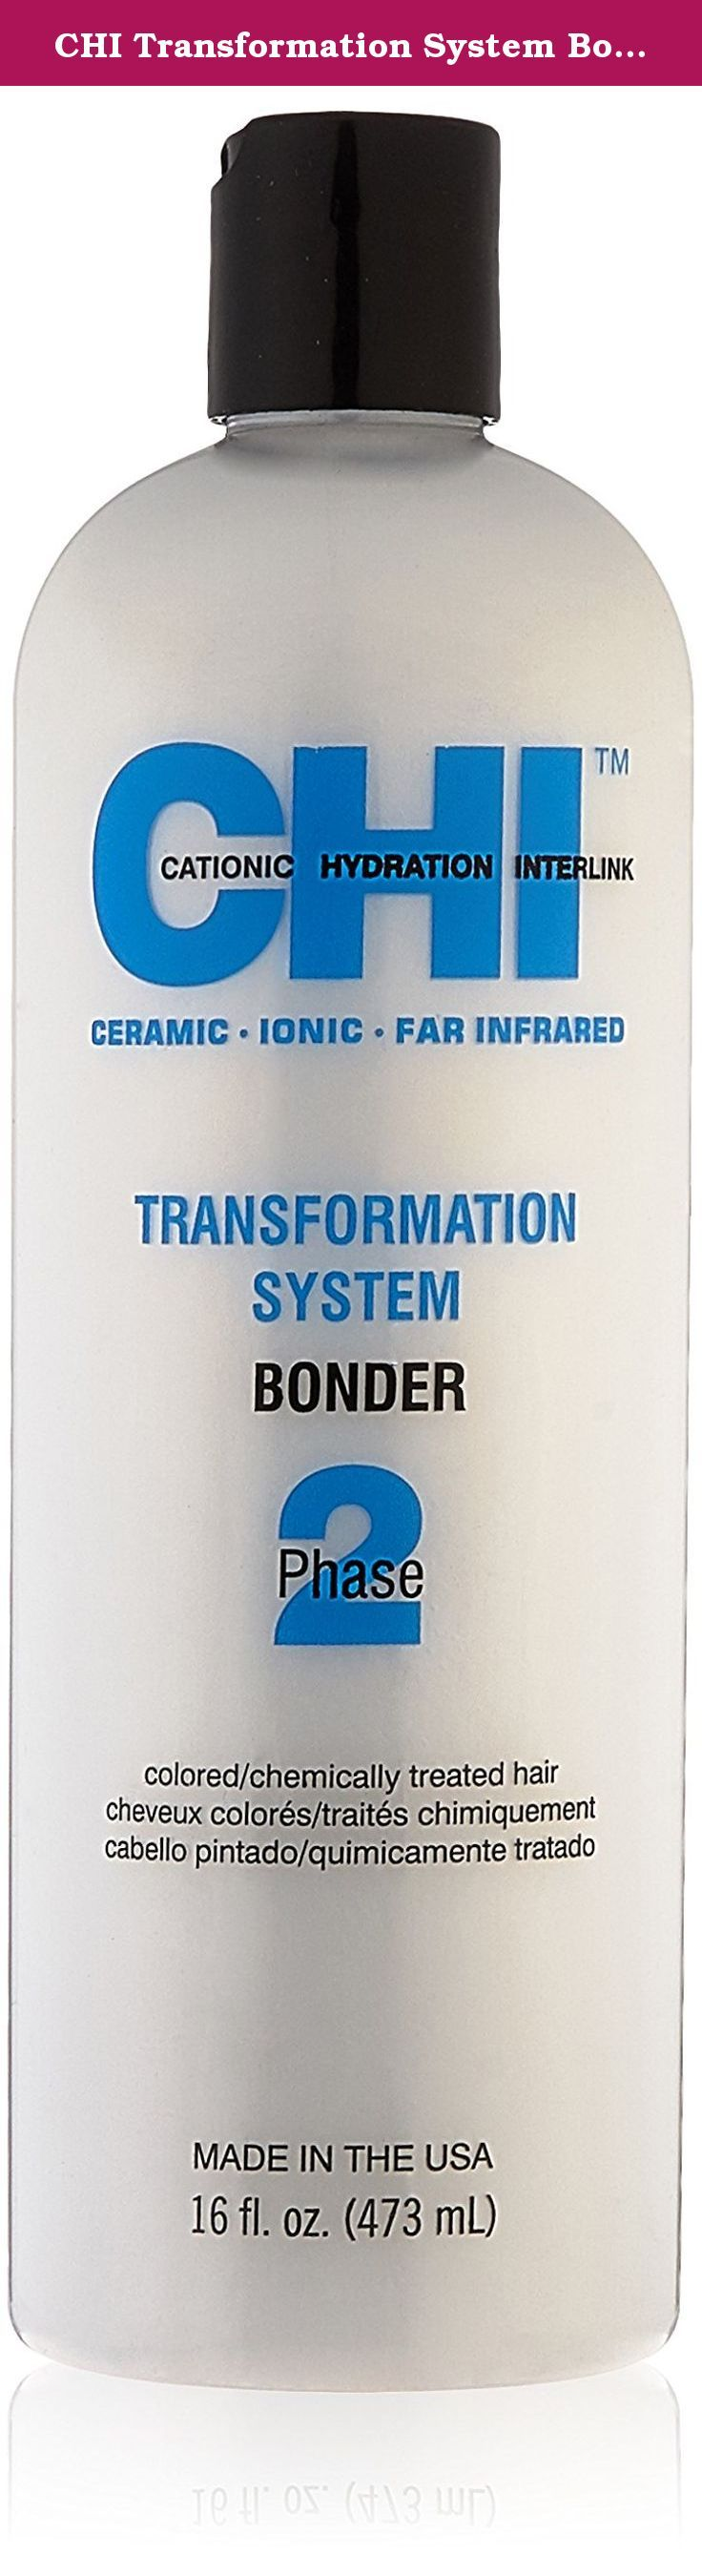 CHI Transformation System Bonder Phase 2 Dye for Colored/Chemically Treated Hair, 16 fl. oz. CHI Transformation System The CHI Transformation System is an Advanced American Technology system utilizing ceramic heat, negative ions, pure natural silk, and Cationic Hydration Interlink to transform hair from frizzy, curly, wavy, or even coarse straight hair into silky, beautiful, controlled hair.